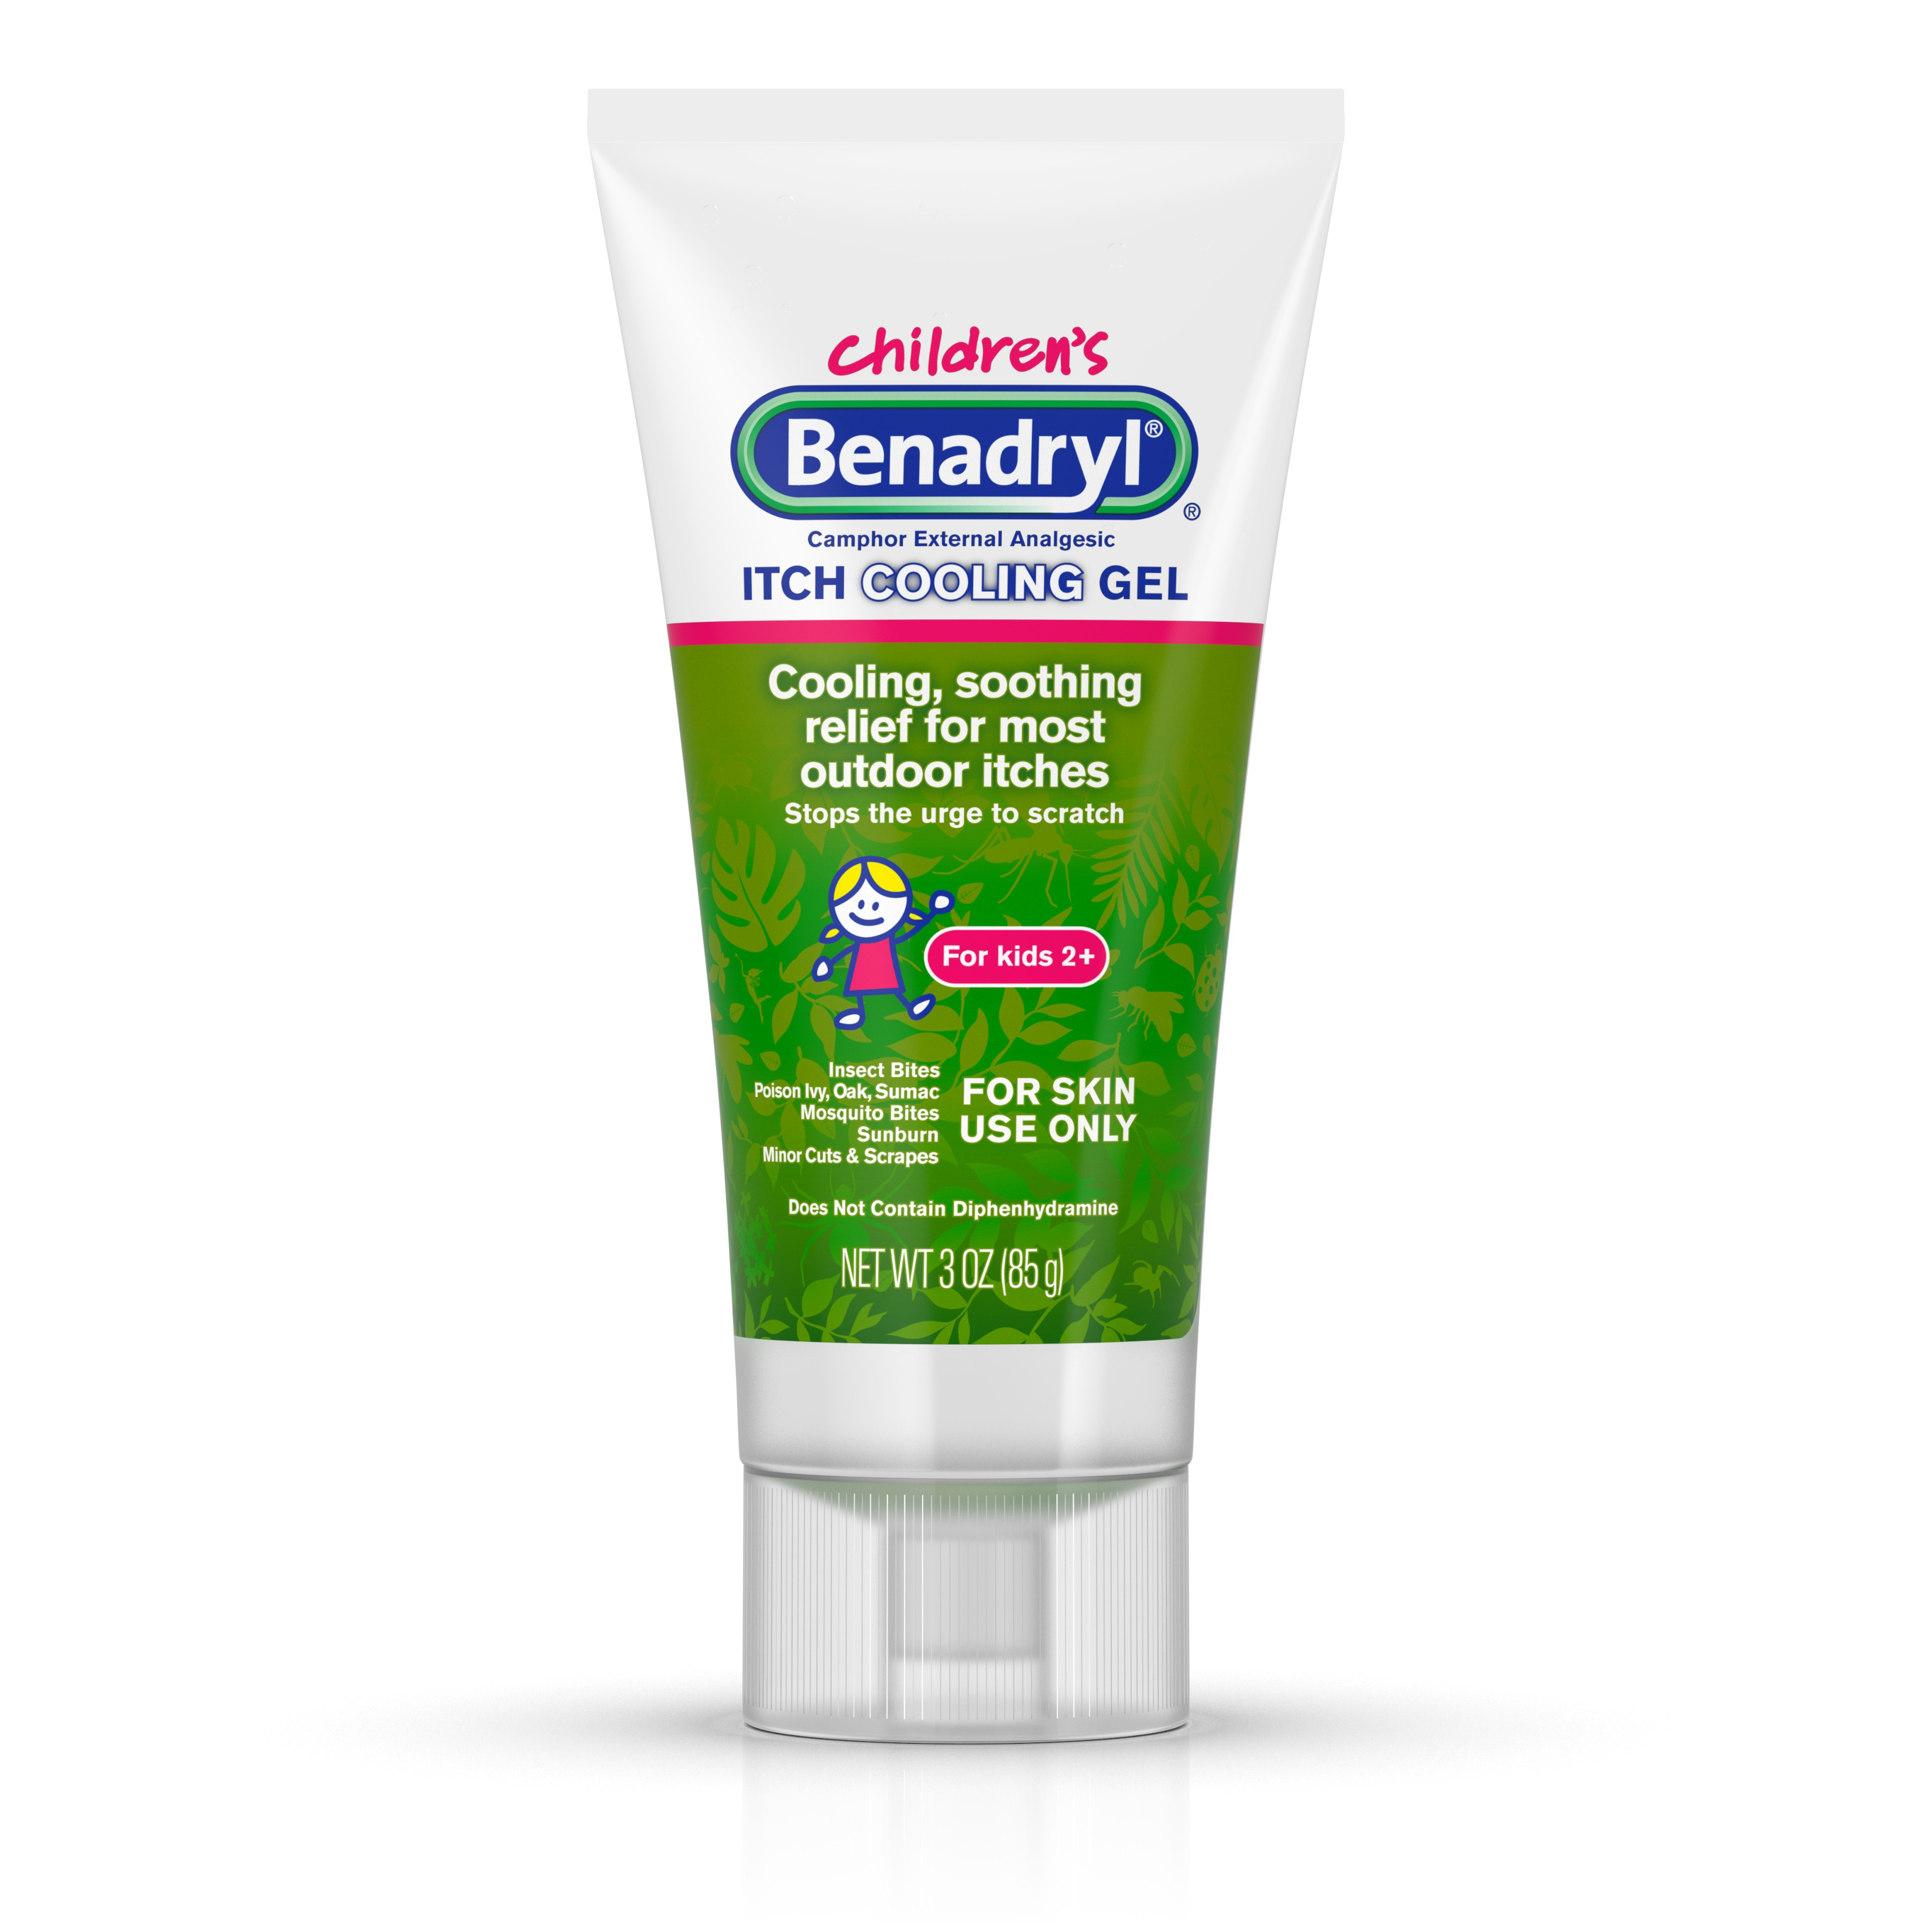 Benadryl Anti-Itch Camphor Cooling Gel for Kids, Travel Size, 3 oz